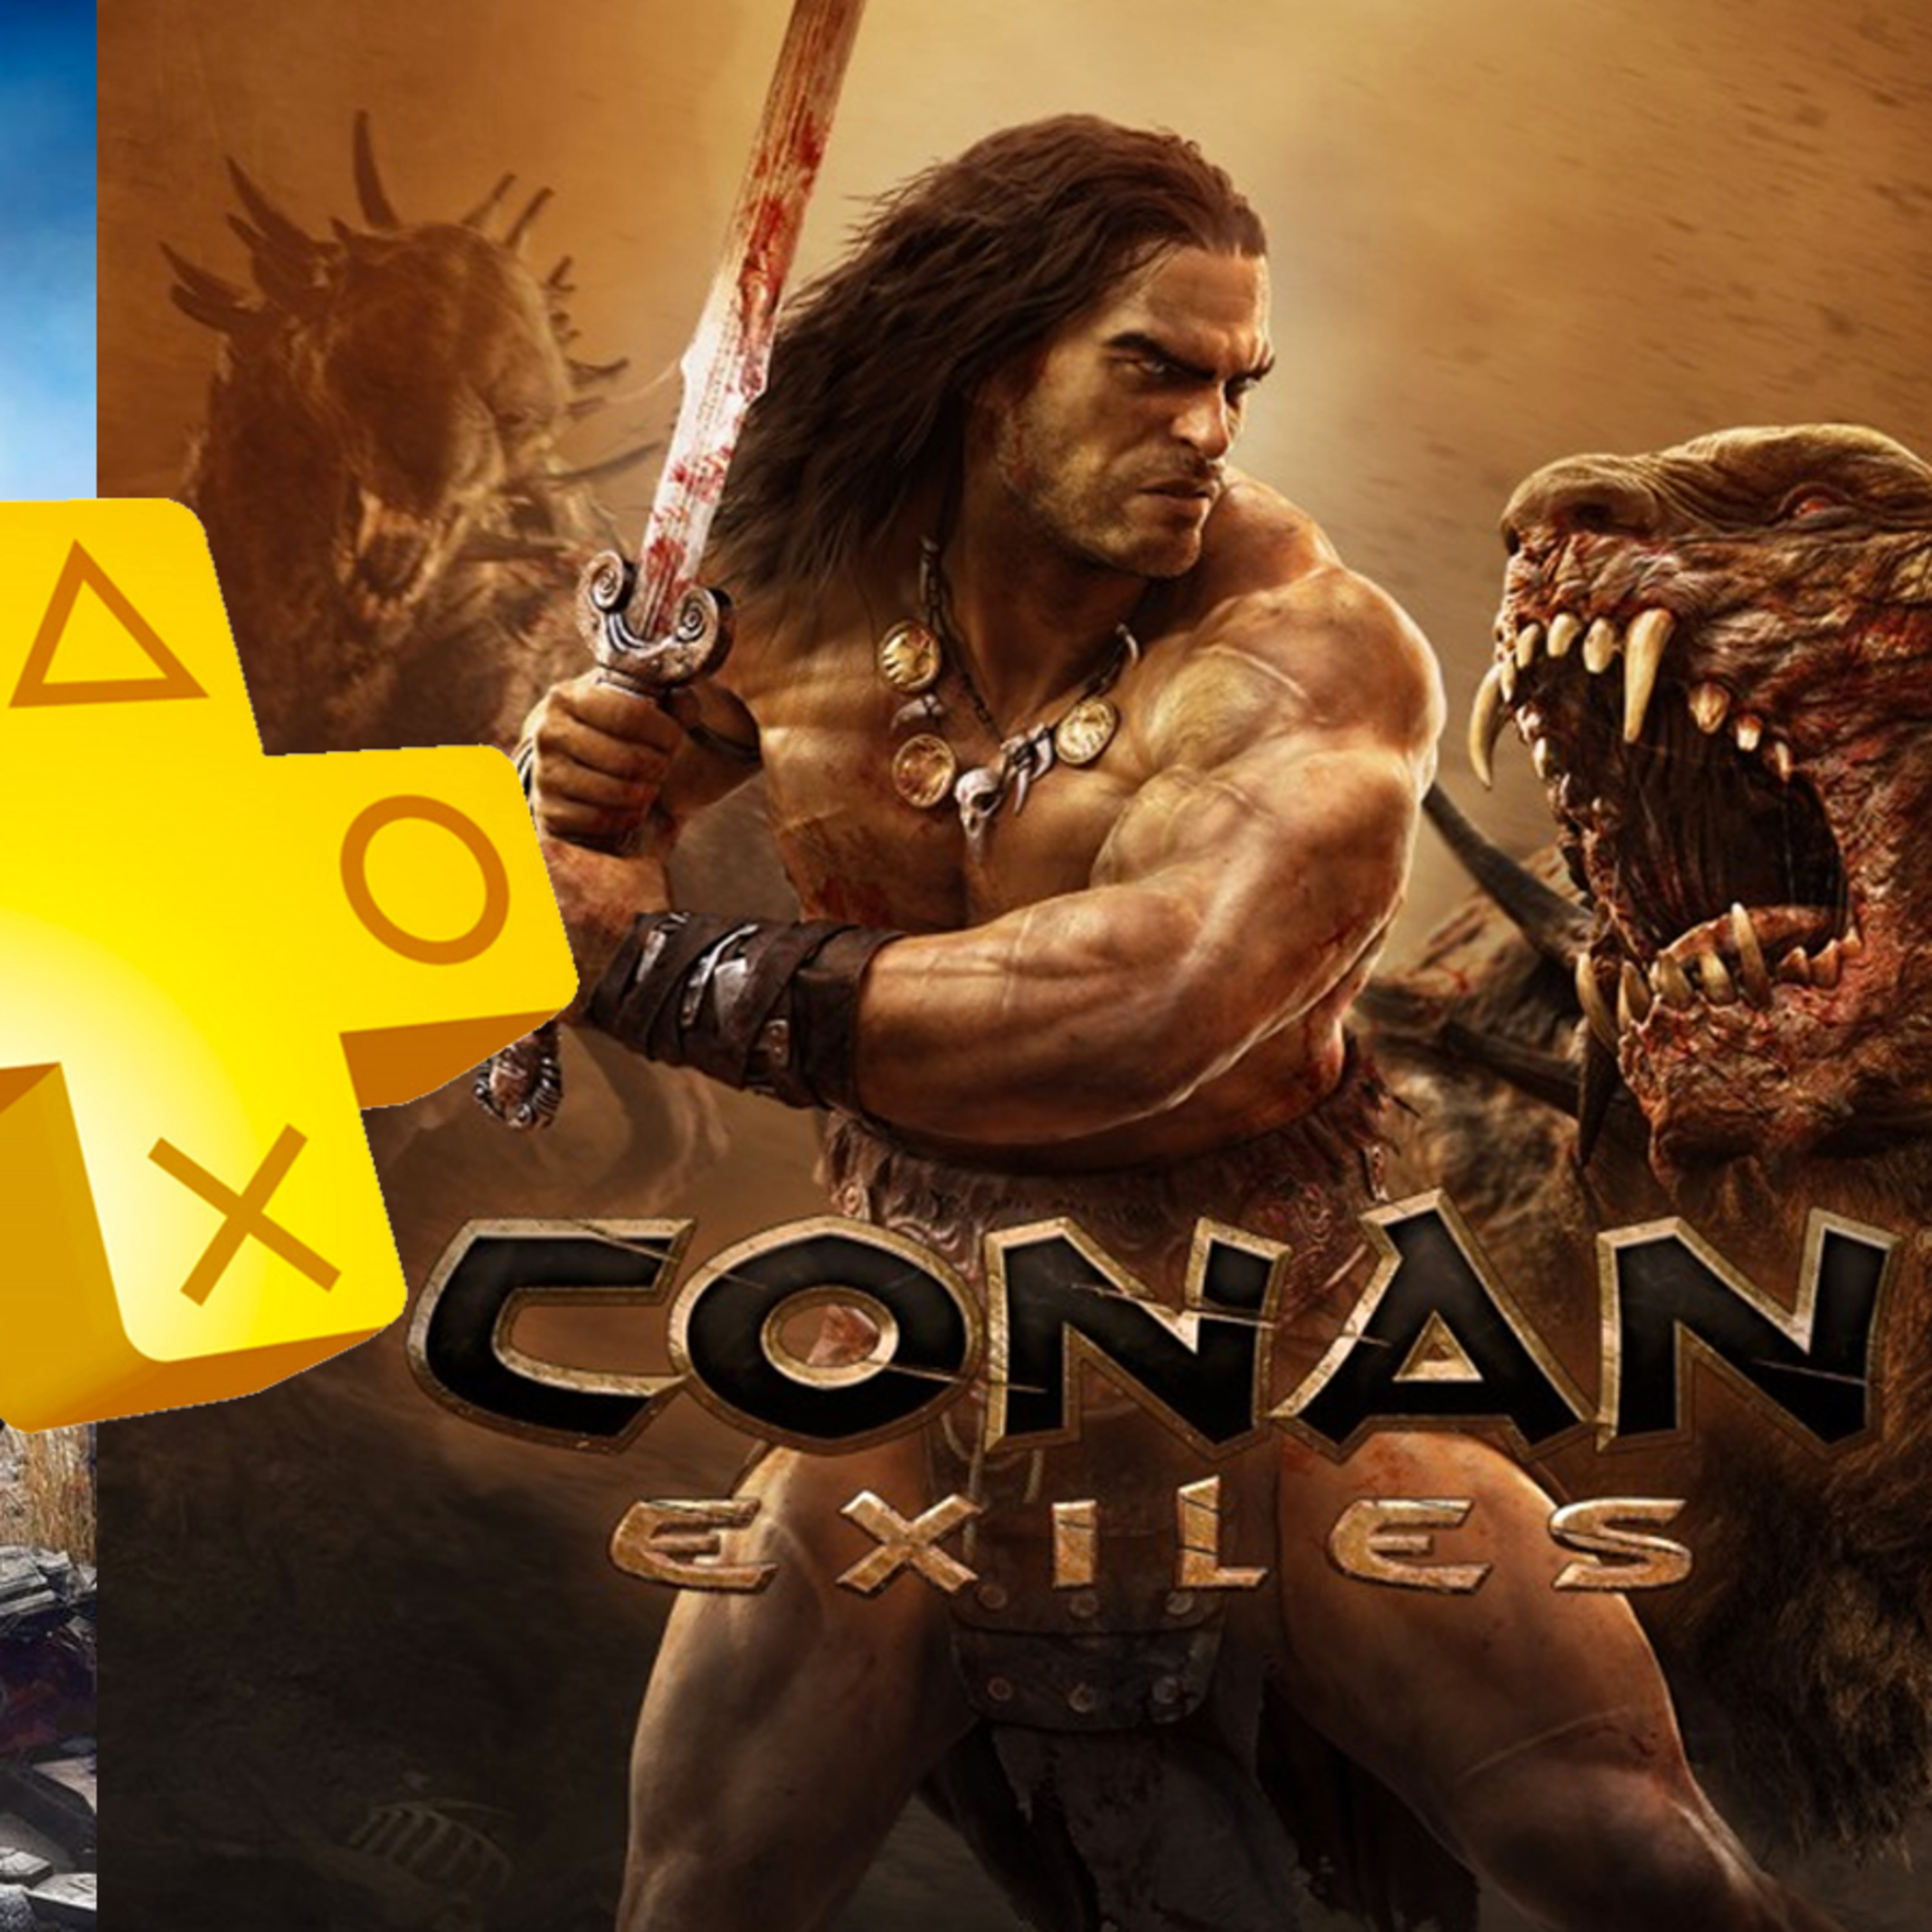 We played The Surge and Conan Exiles let's talk about it! (Plus Club